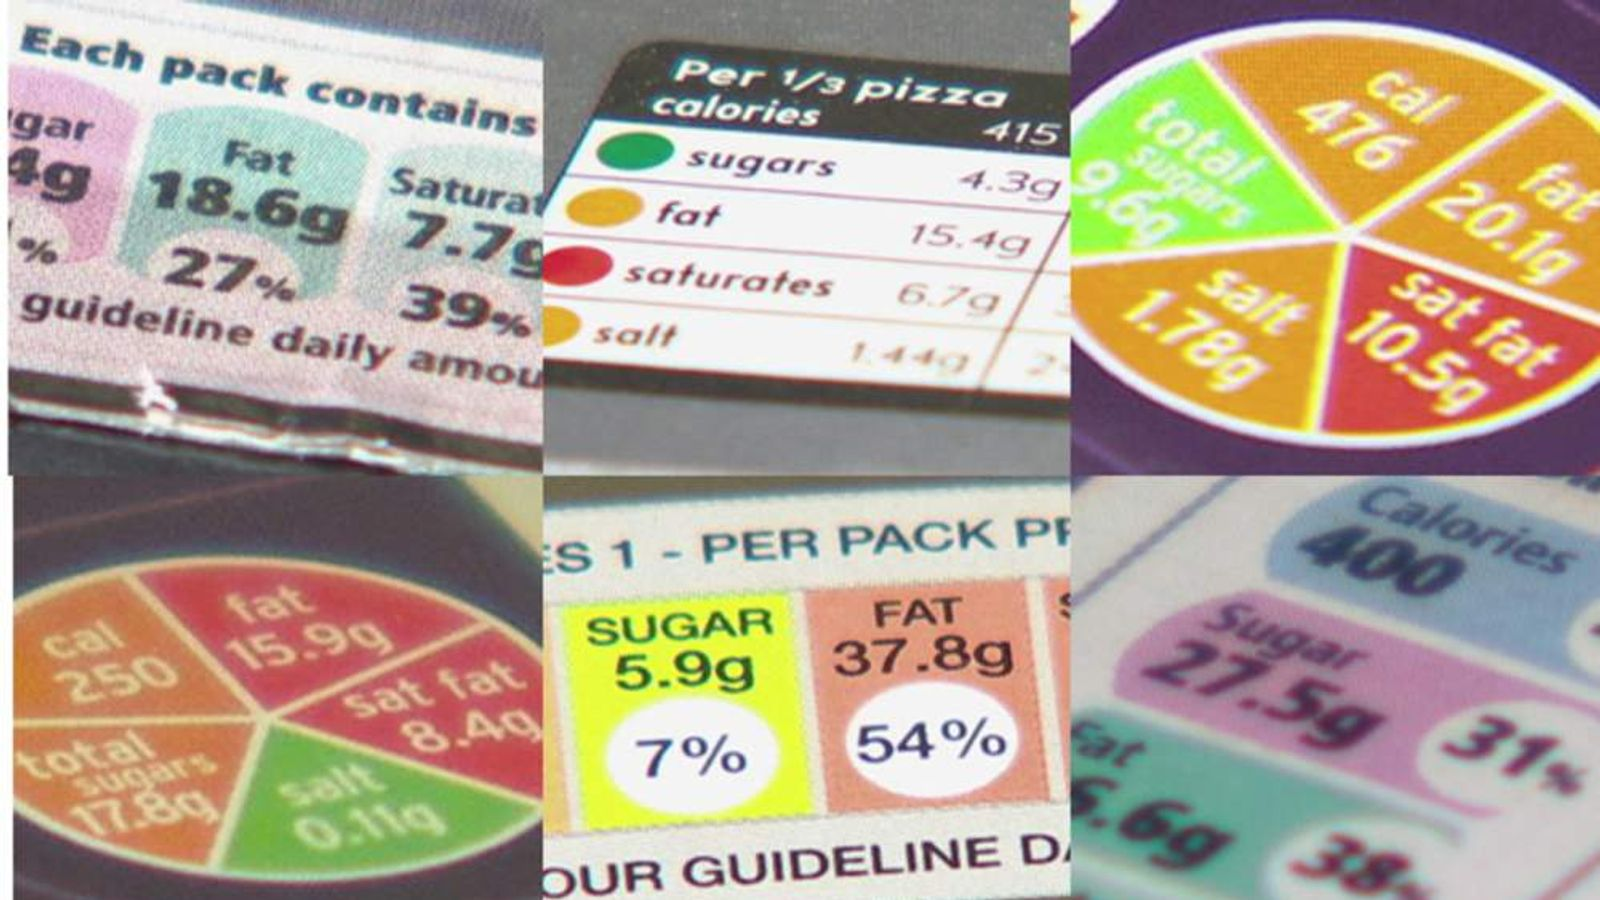 Traffic light food labelling systems